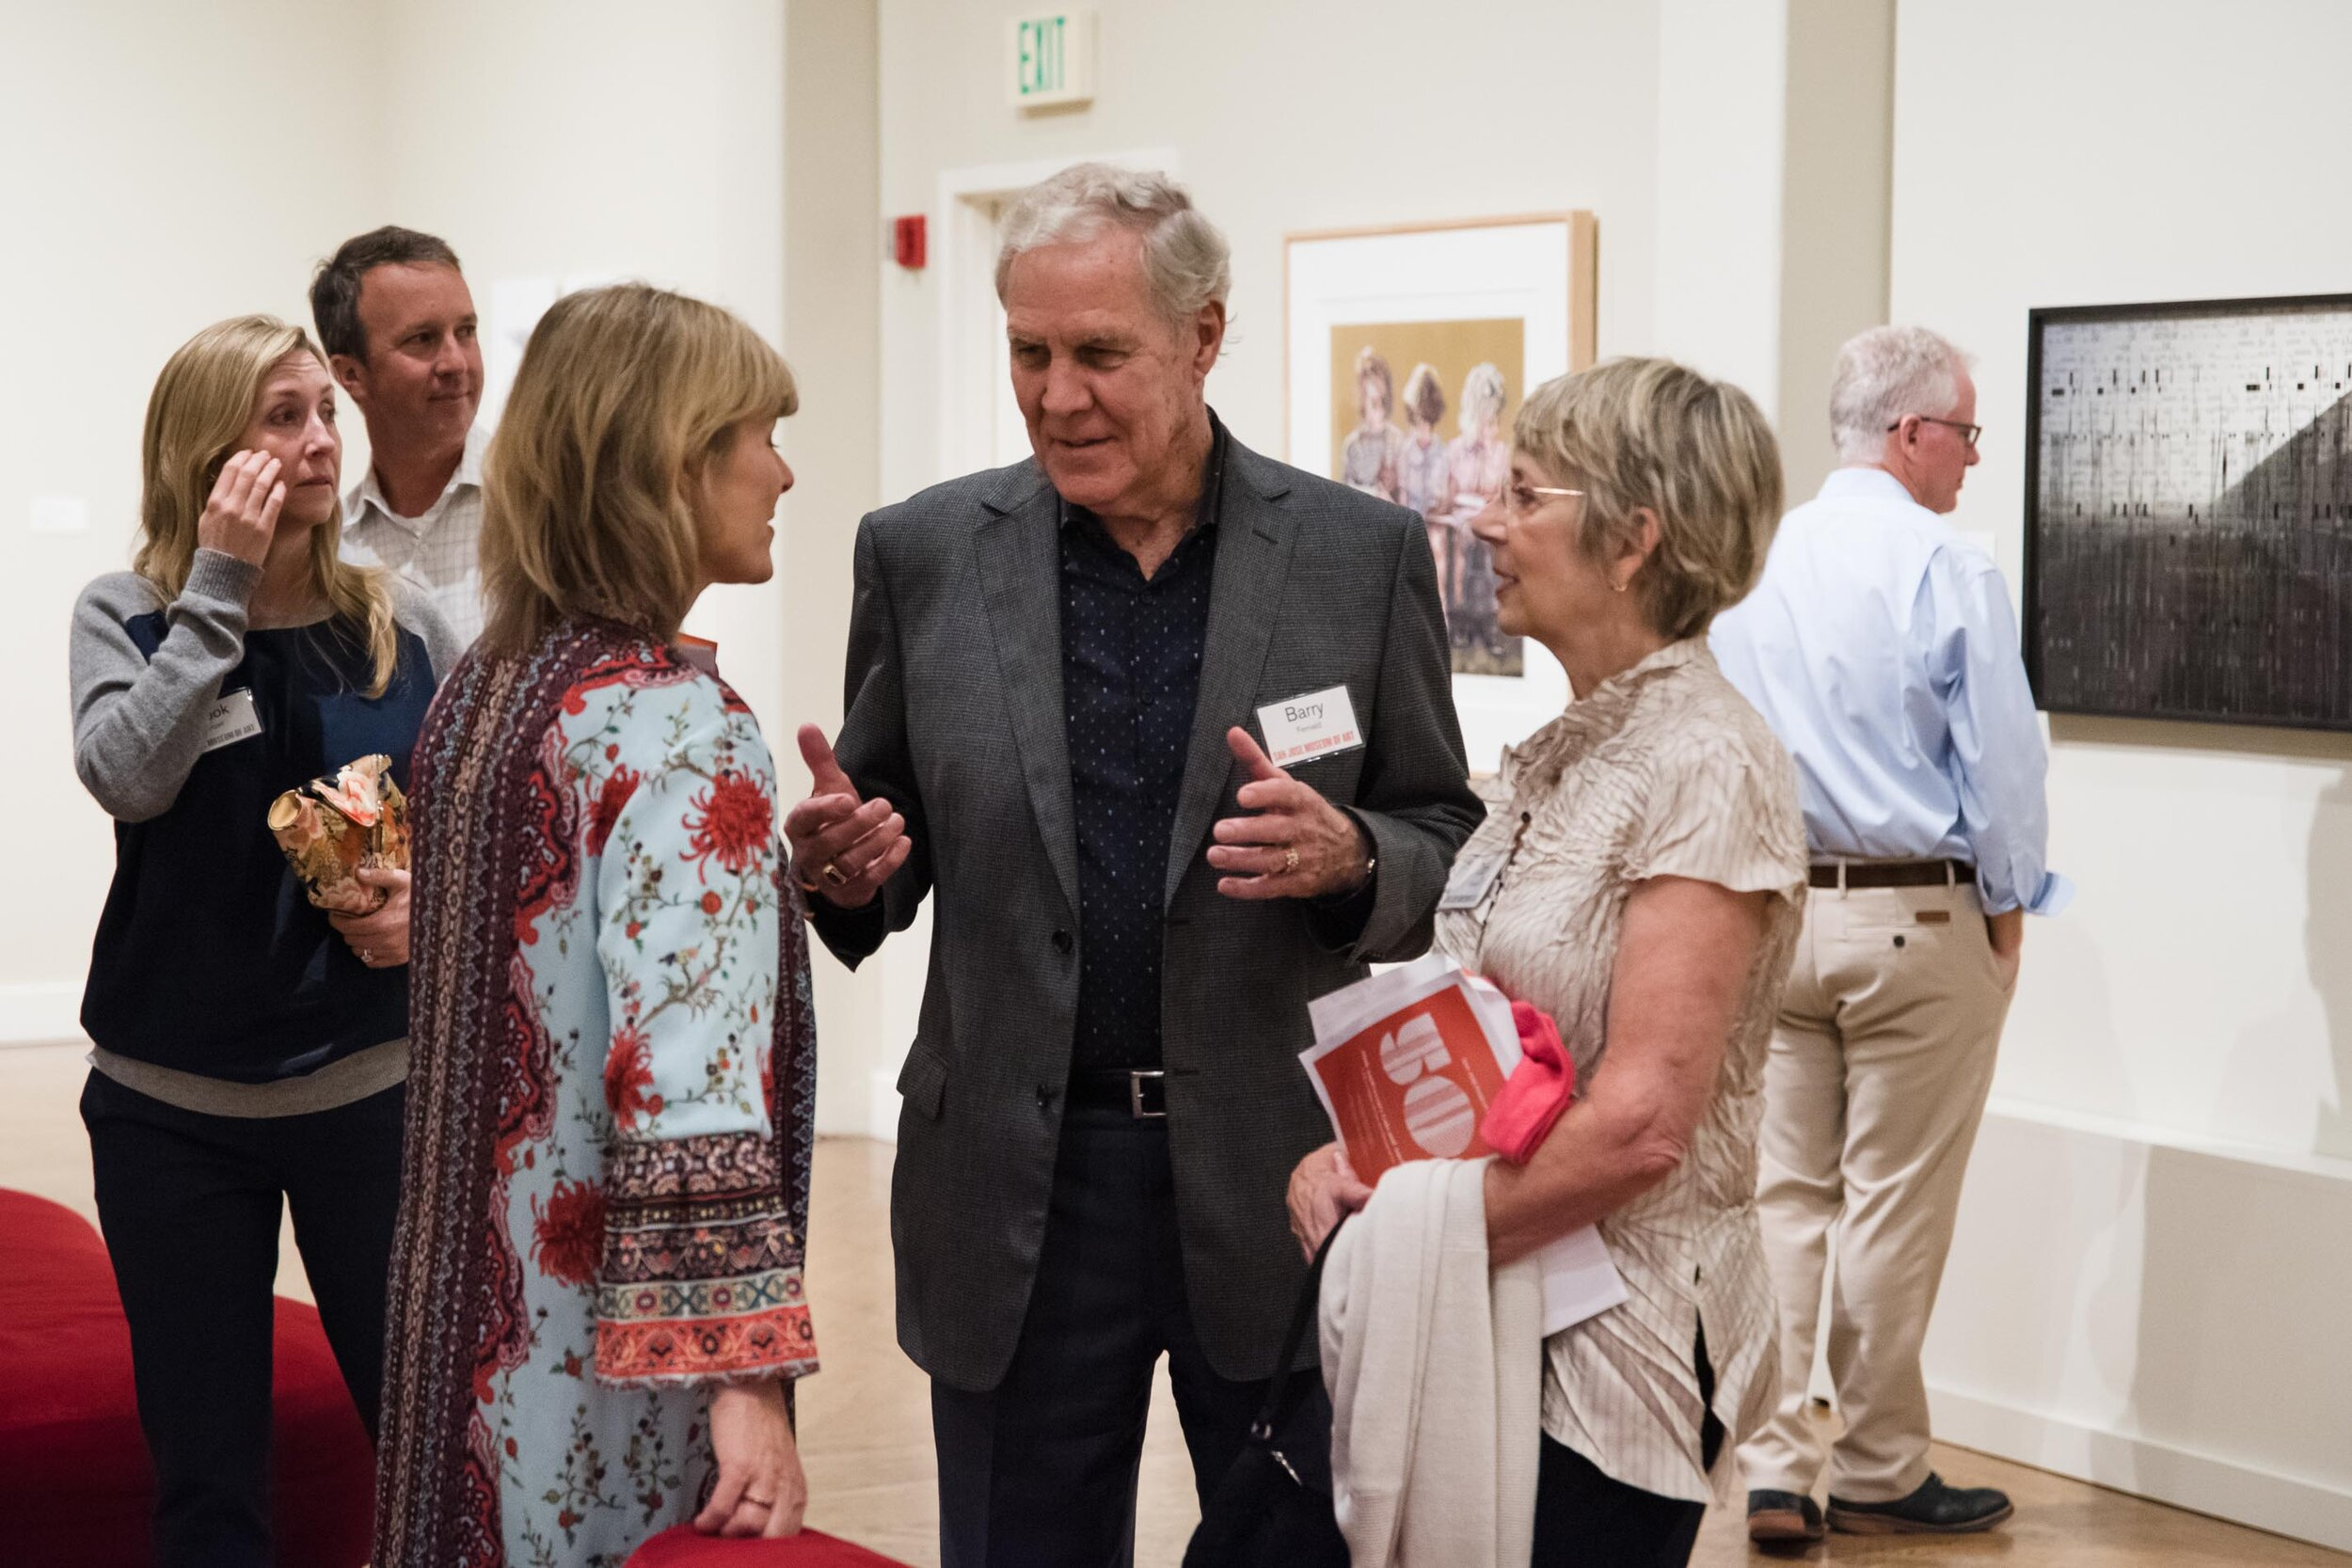 124_GalaAuctionPreview_9.16.19_photo_SharonKenney.jpg